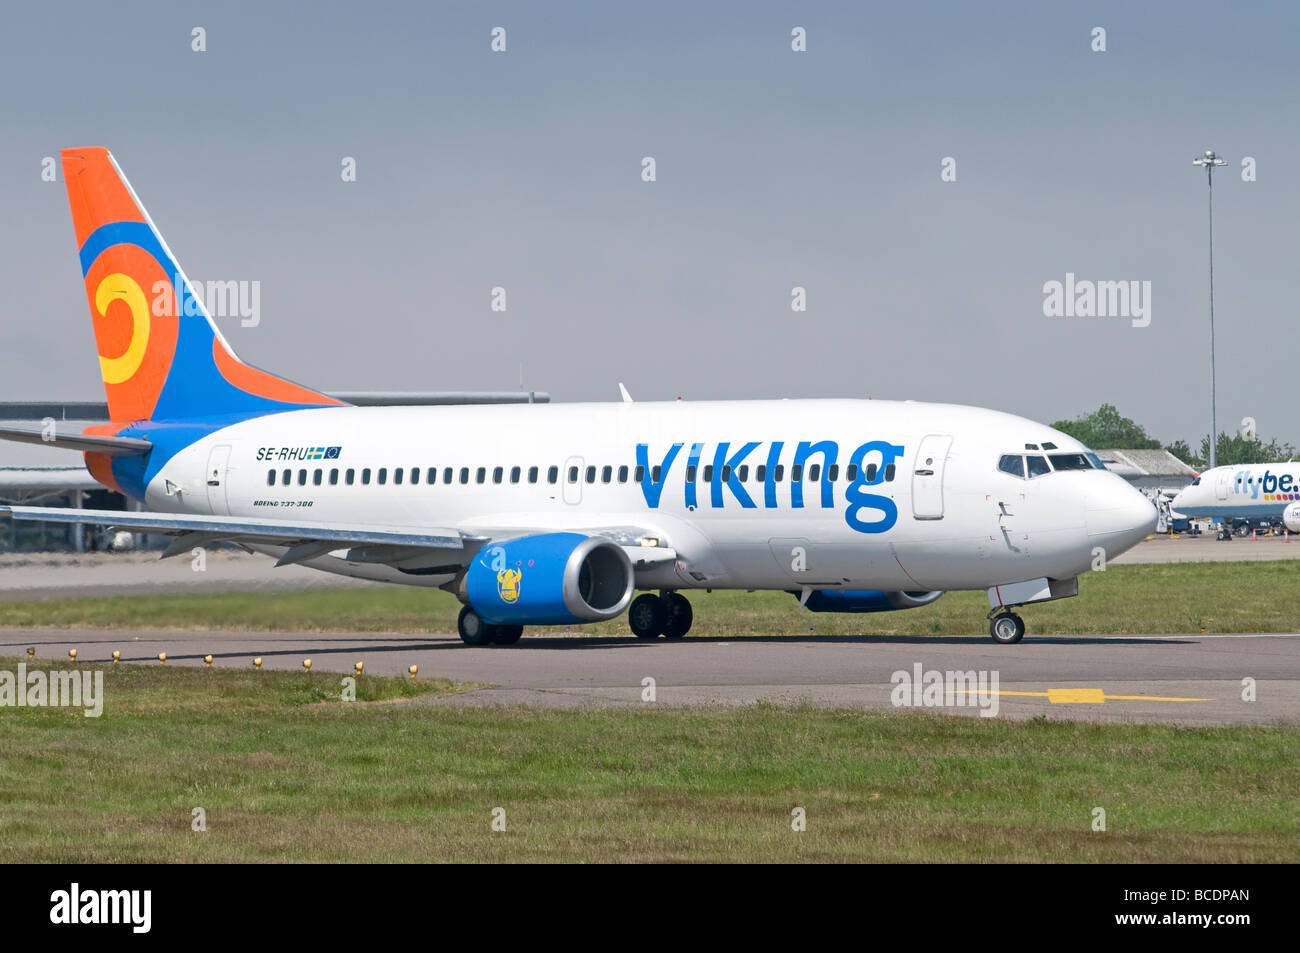 Viking Airlines Boeing 737-36N at Inverness Dalcross Airport Stock Photo